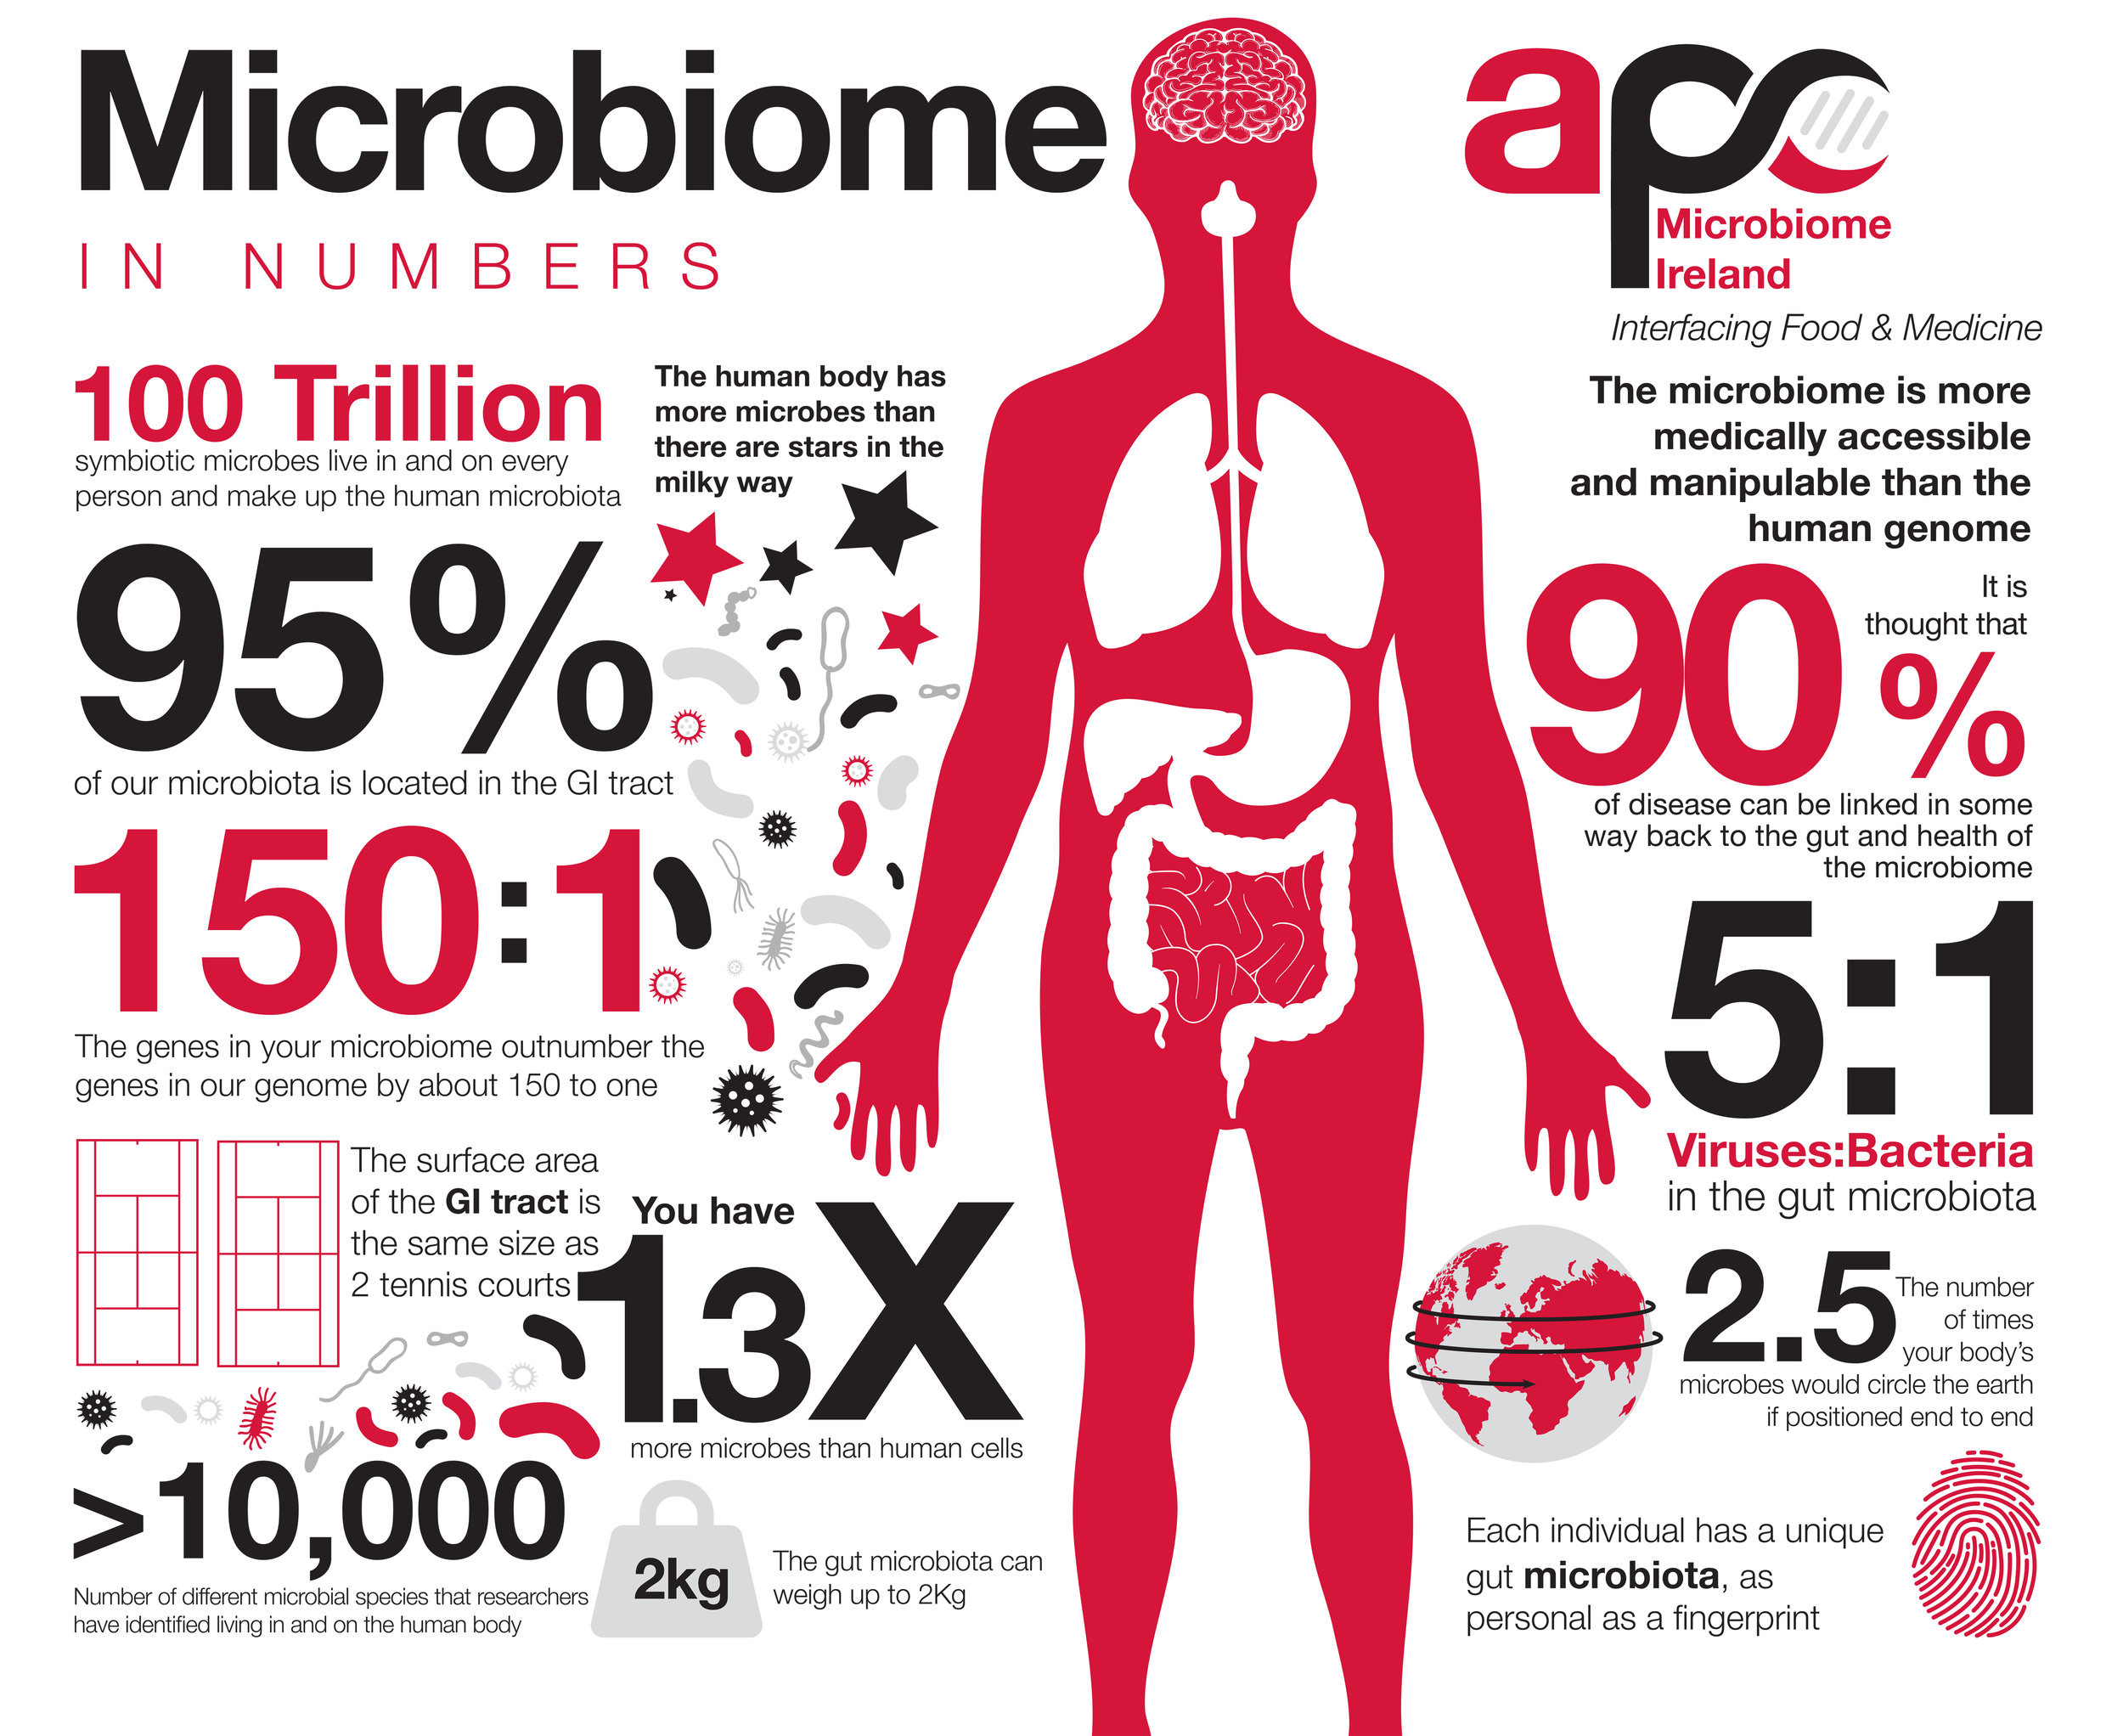 Microbiome-in-Numbers-1.jpg